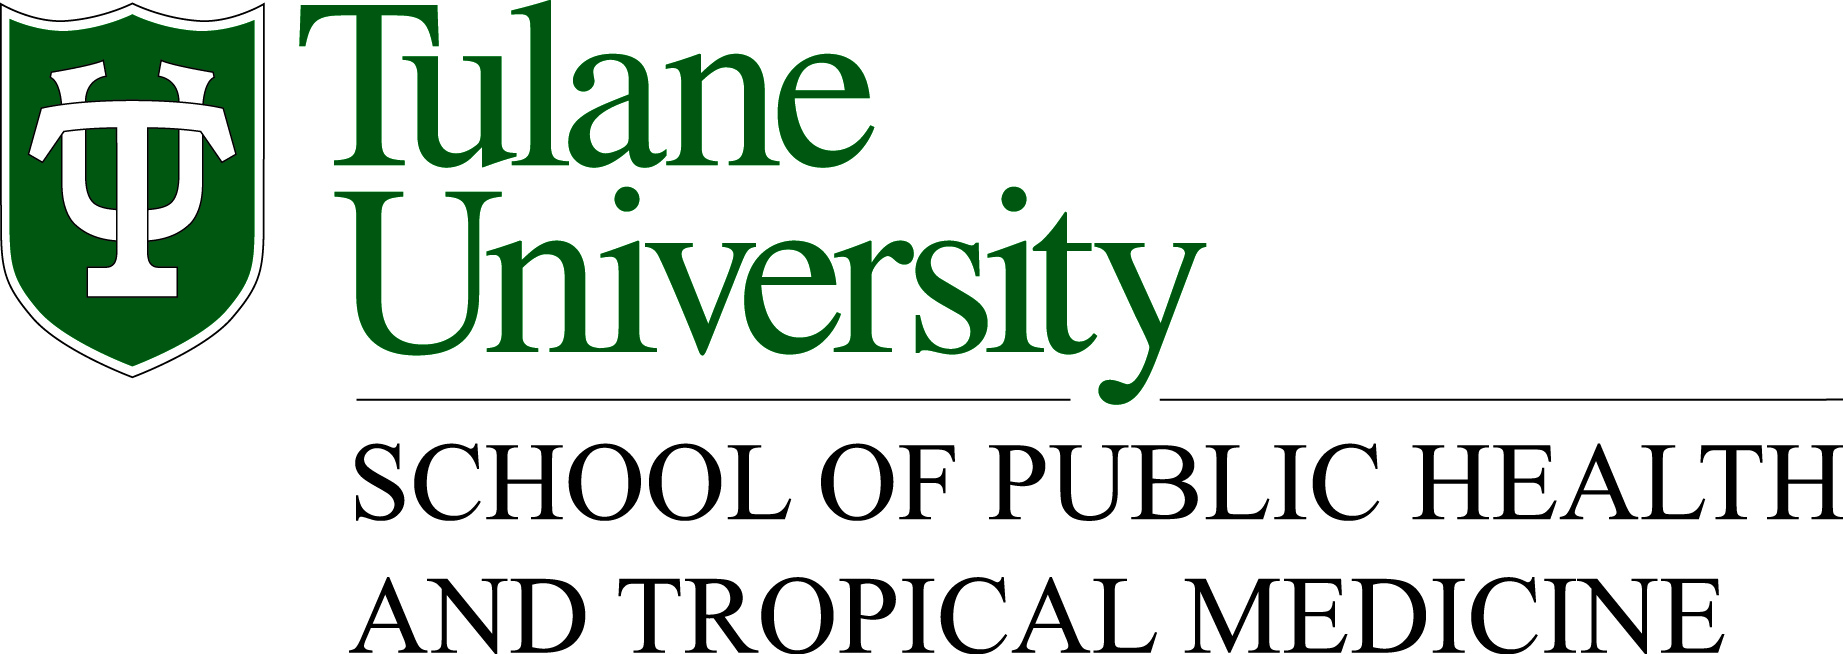 Tulane University School of Public Health and Tropical Medicine